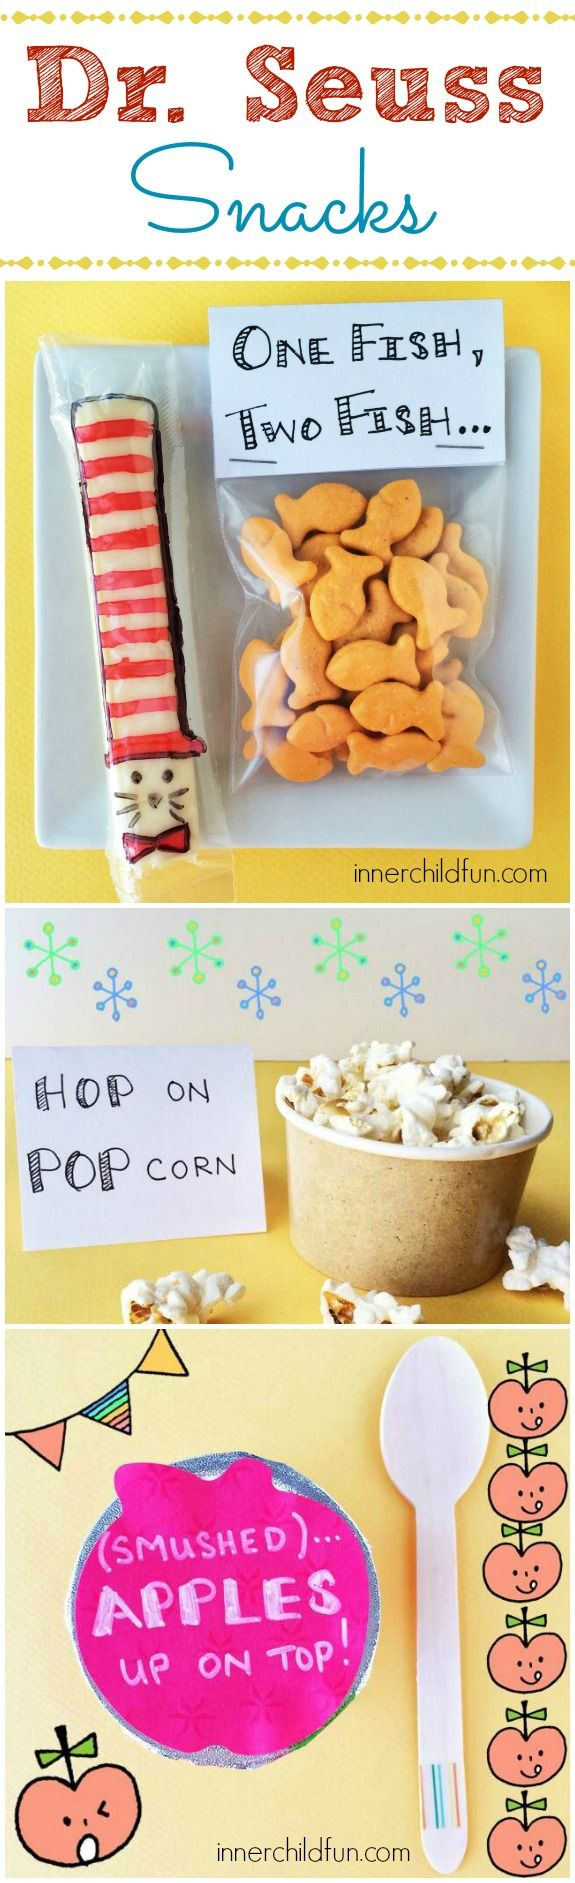 Dr. Seuss Snacks! - fun, festive, and candy-free snacks to celebrate Dr. Seuss Day! :-)